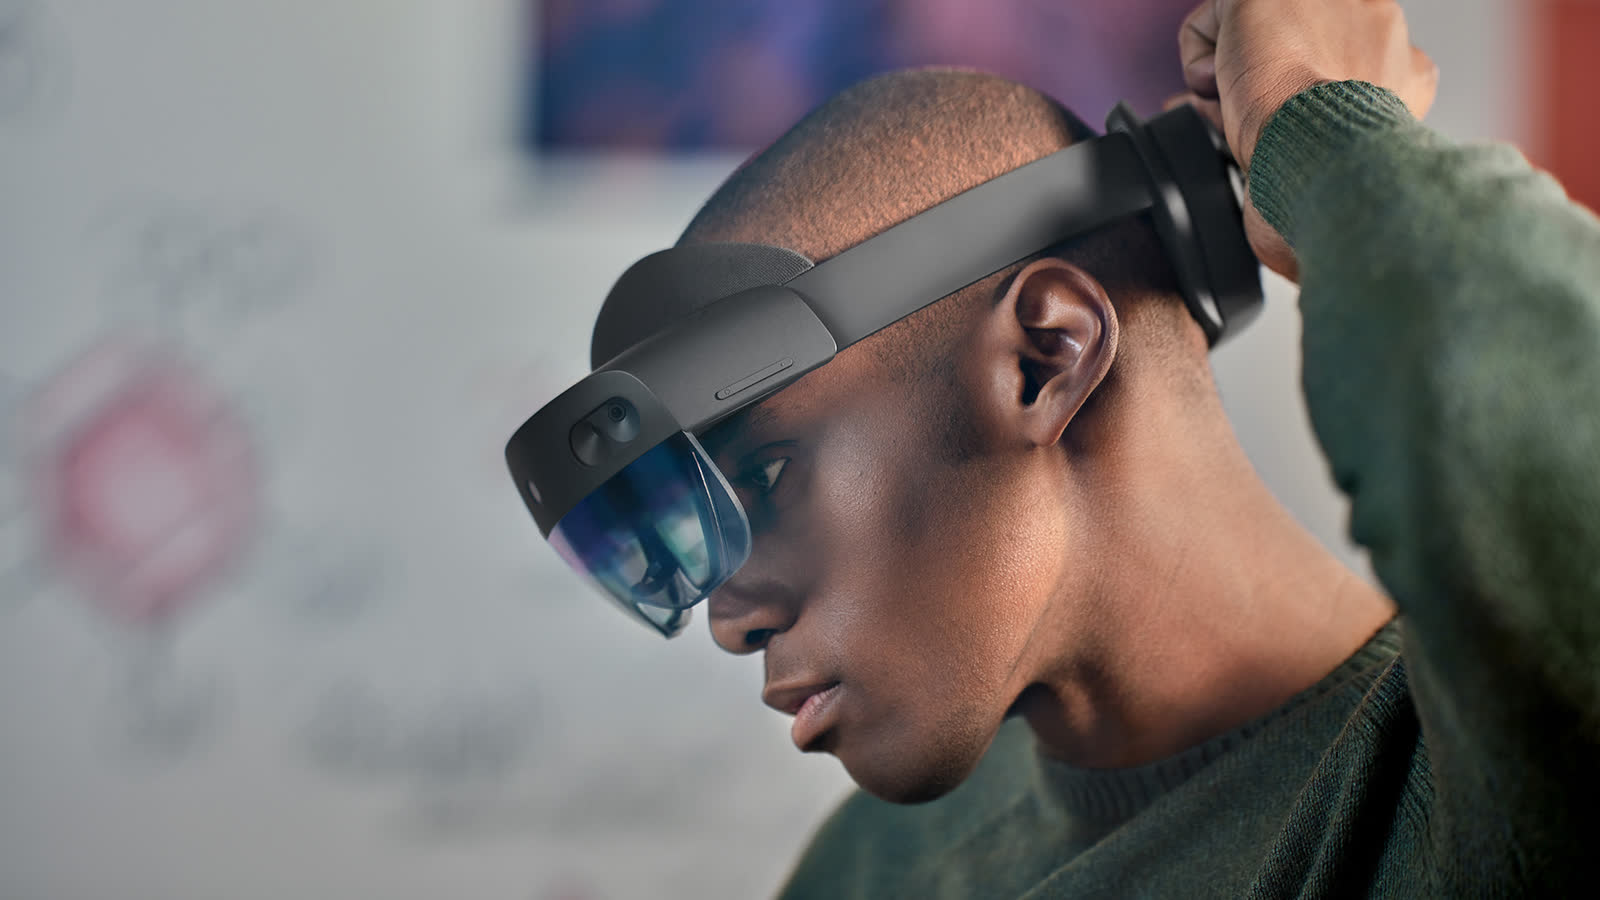 Microsoft is working on a consumer version of HoloLens